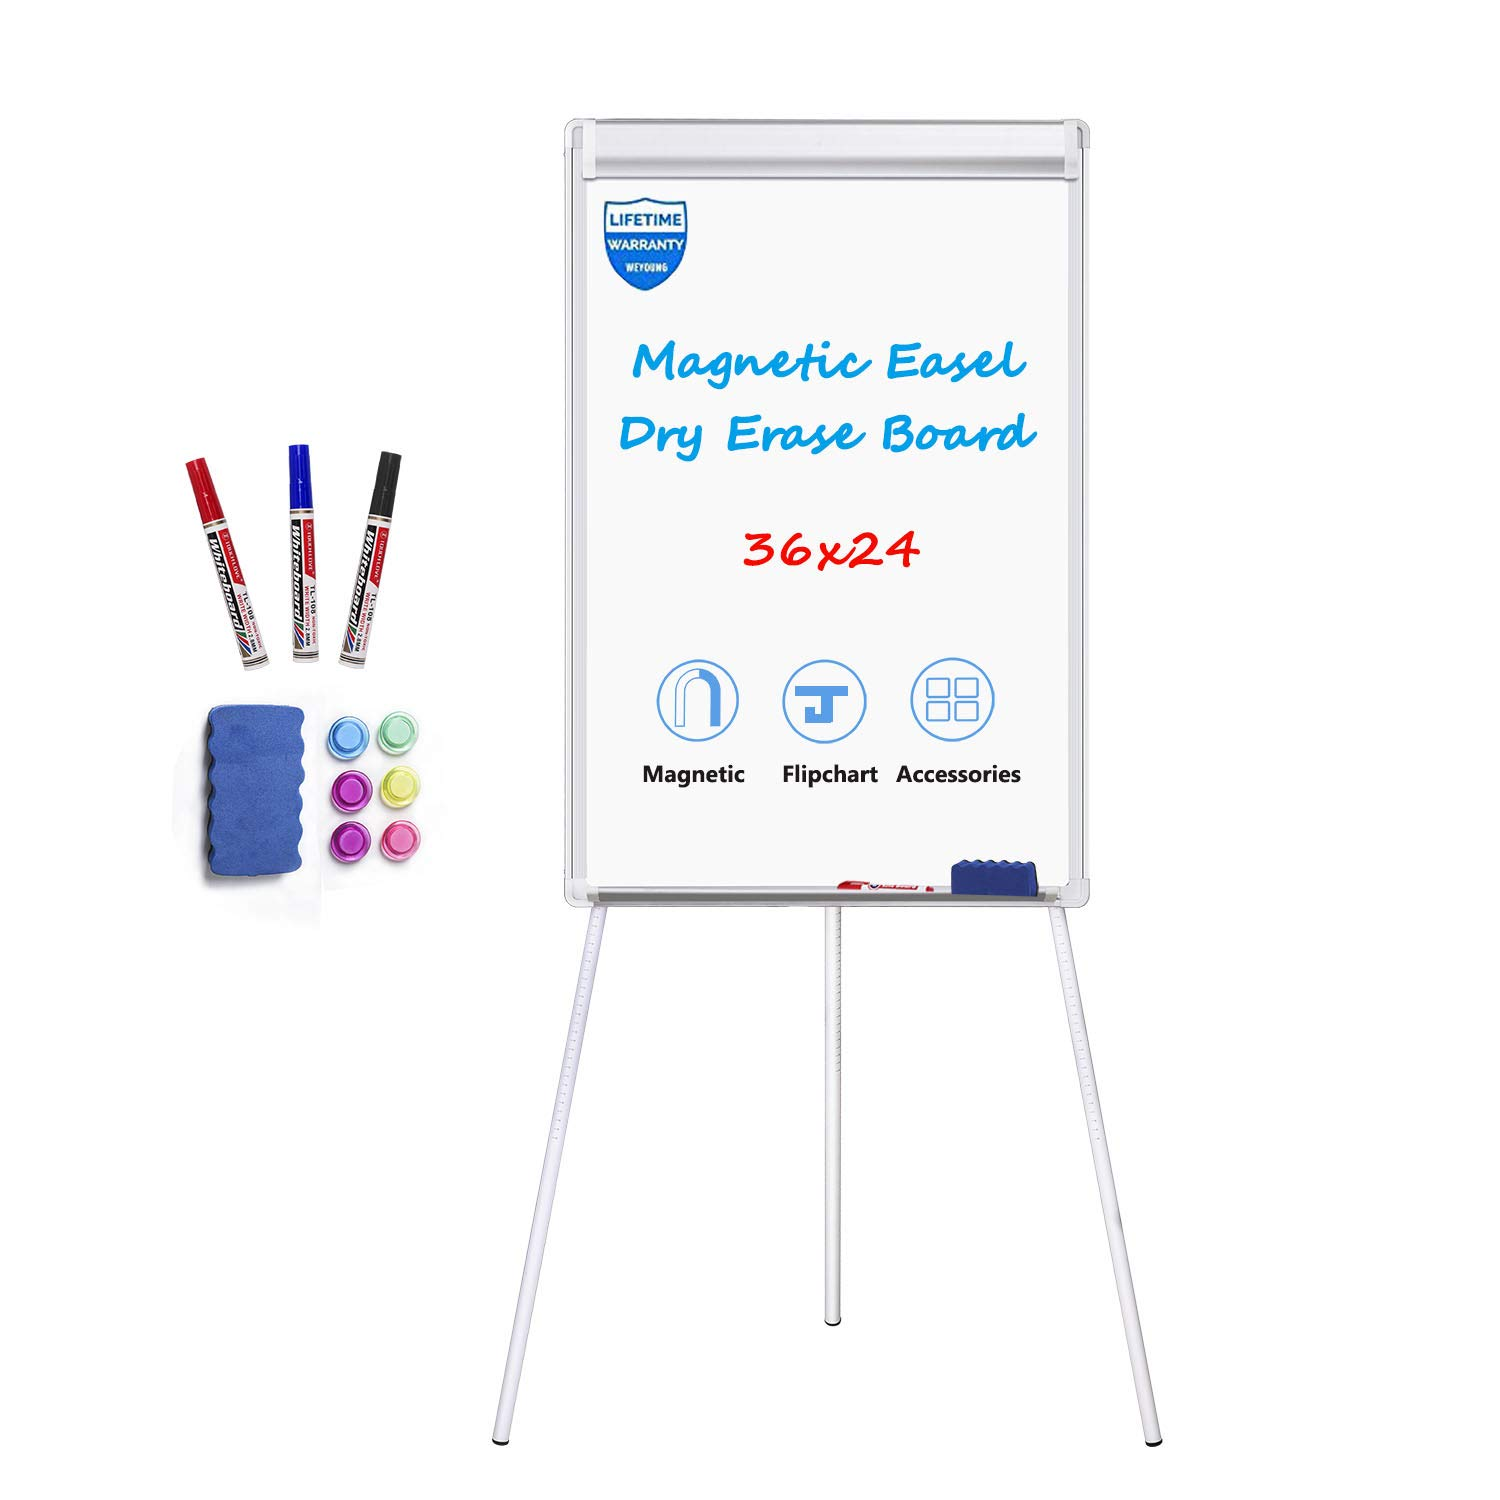 White Board Easel Stand Magnetic Whiteboard Flipchart Tripod Easel Height Adjustable Dry Erase Board with 1 Eraser, 3 Markers, 6 Magnets, 24x36 inches, White by WEYOUNG